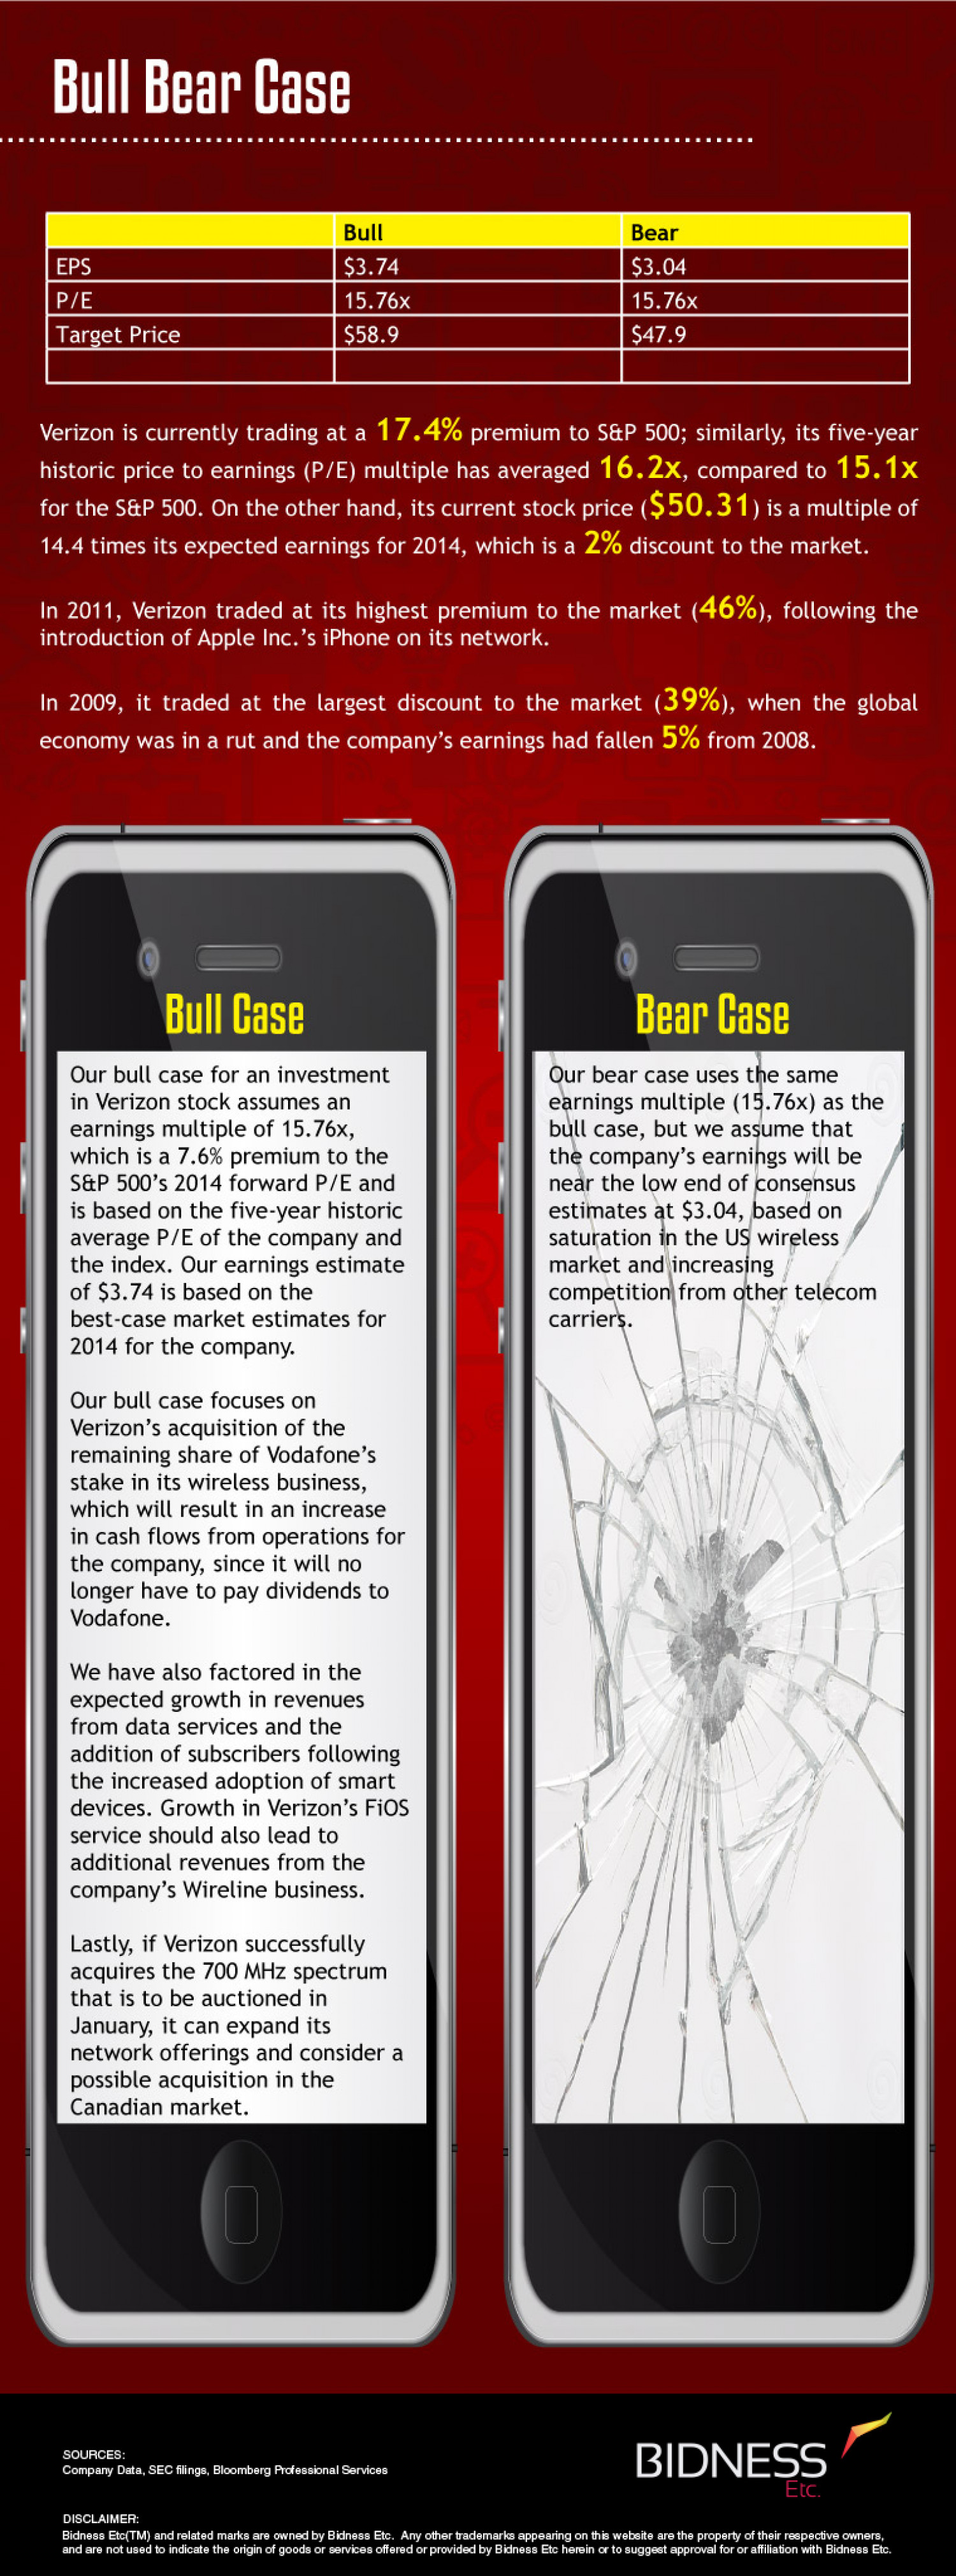 Verizon (VZ) Bull Bear Case Infographic